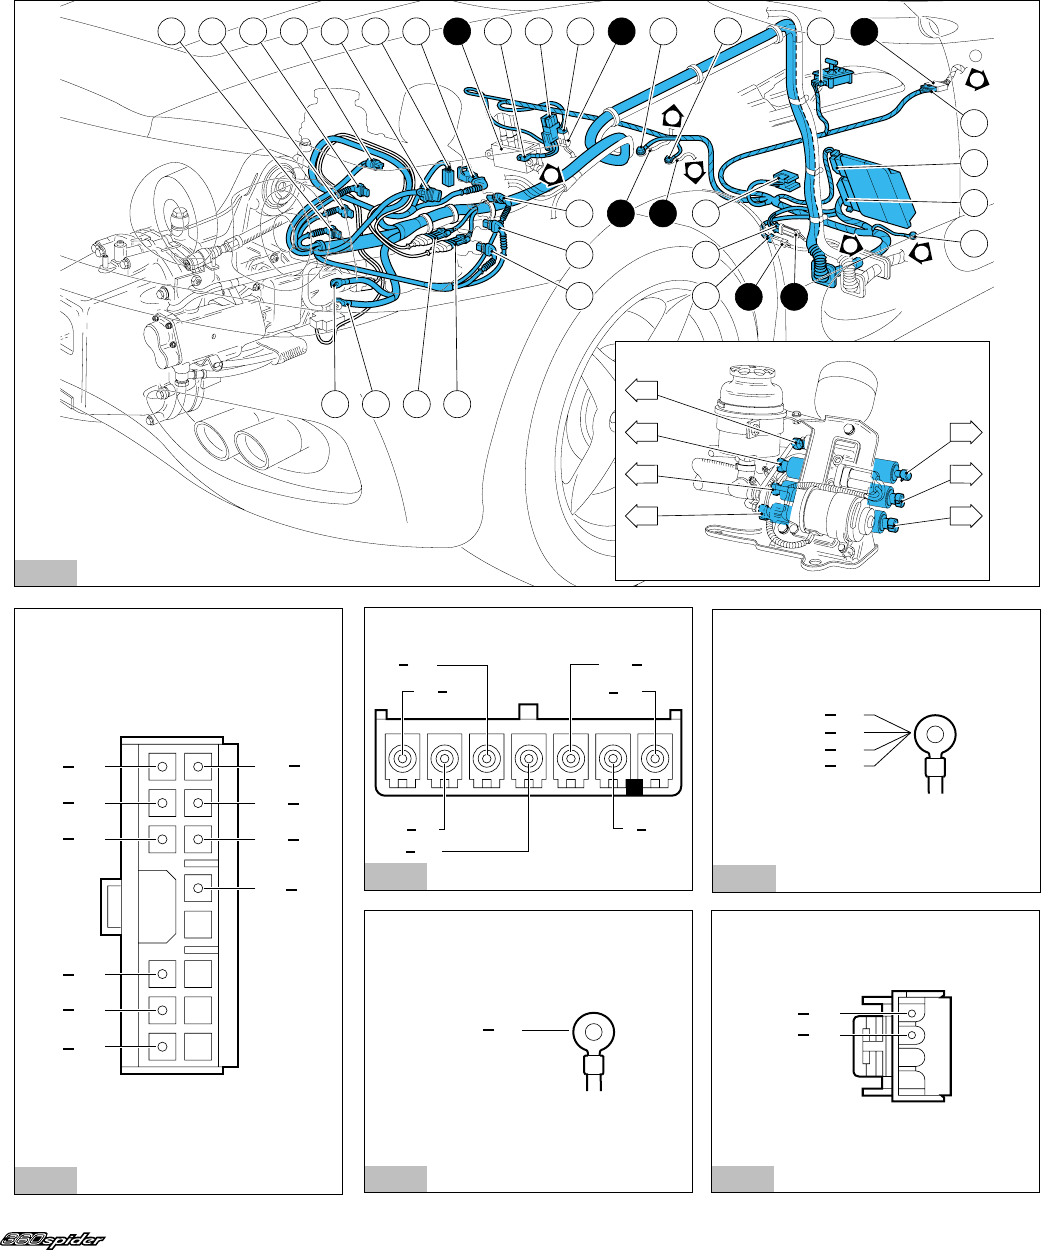 ferrari 360 wiring diagrams wiring diagram librariesferrari 360 misc documents wiring diagrams pdfferrari 360 wiring diagrams 19